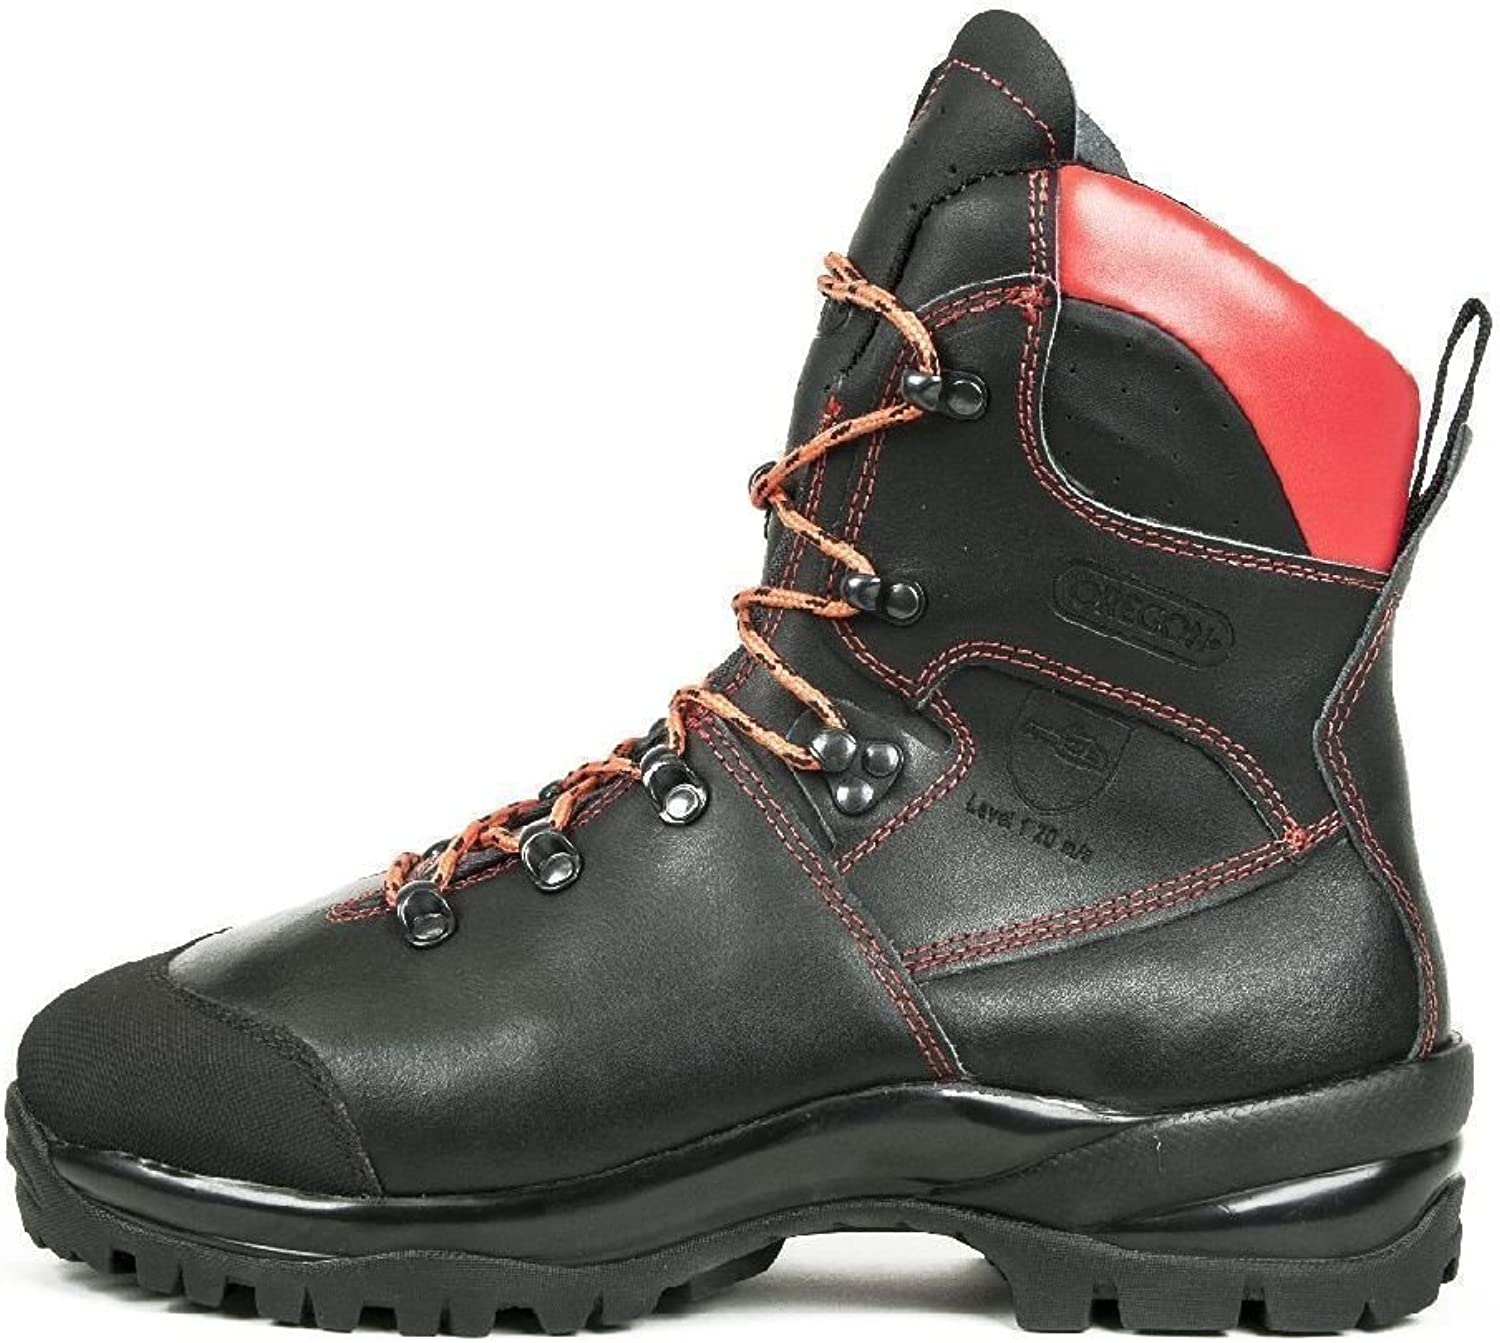 Oregon Waipua Leather Chainsaw Safety Boots svart 295479 295479 295479 Water Repell  detaljhandel